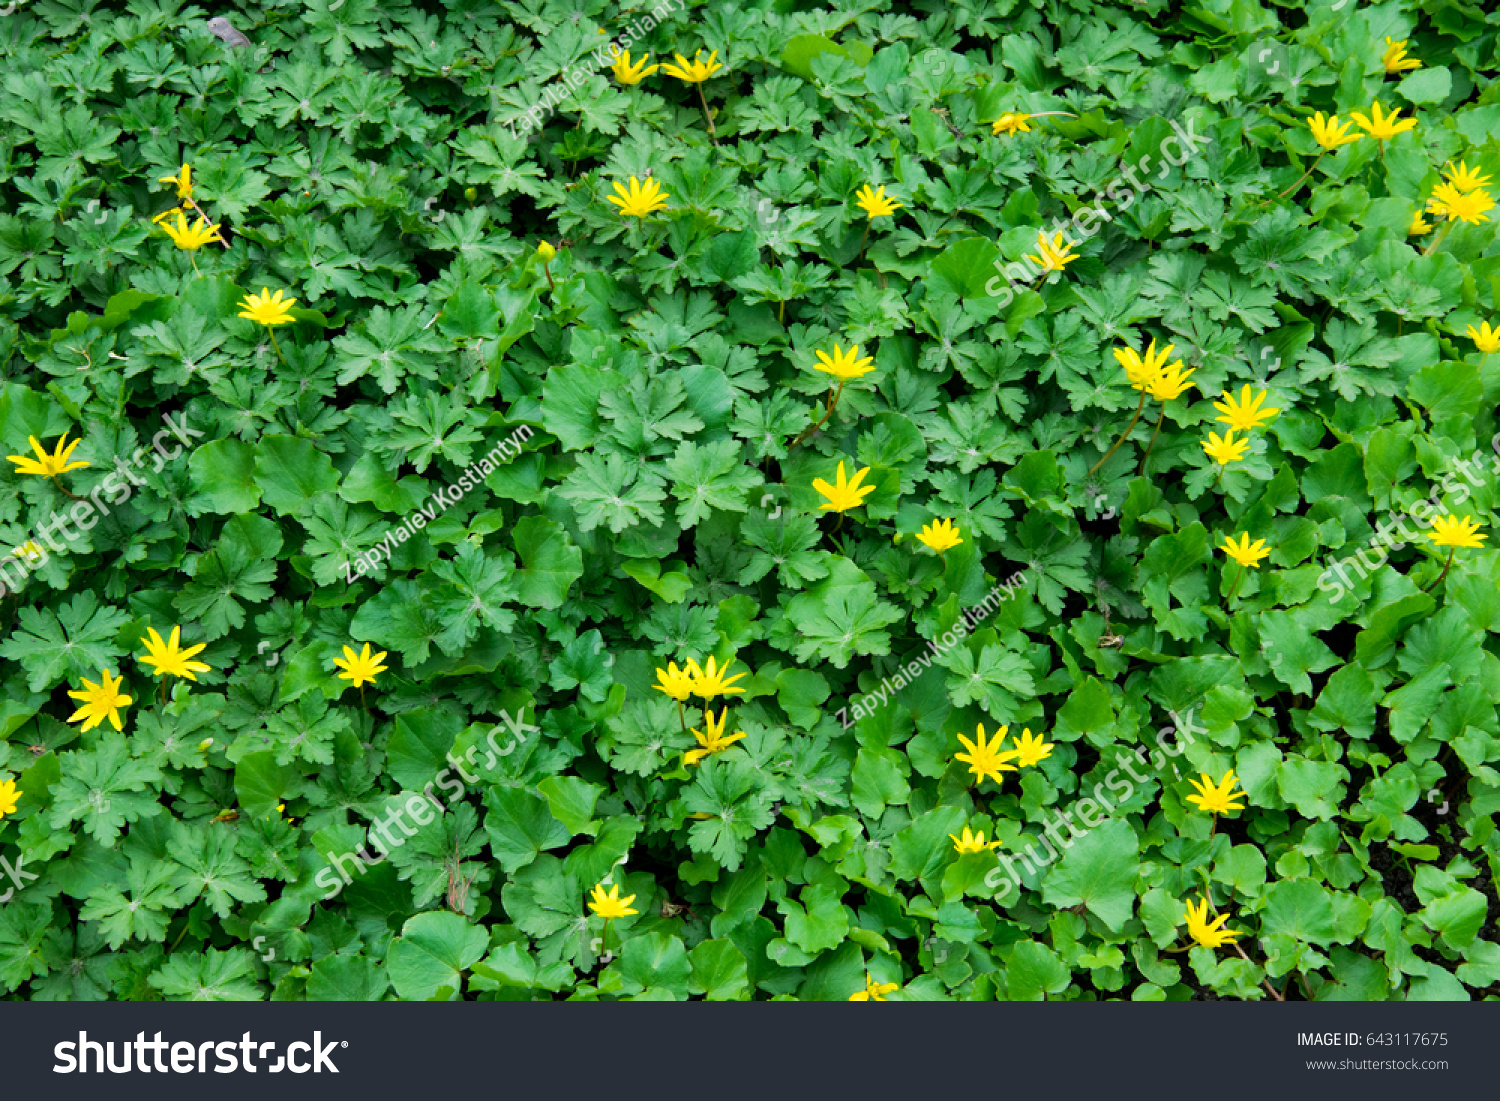 Green Grass Small Yellow Flowers Stock Photo Edit Now 643117675